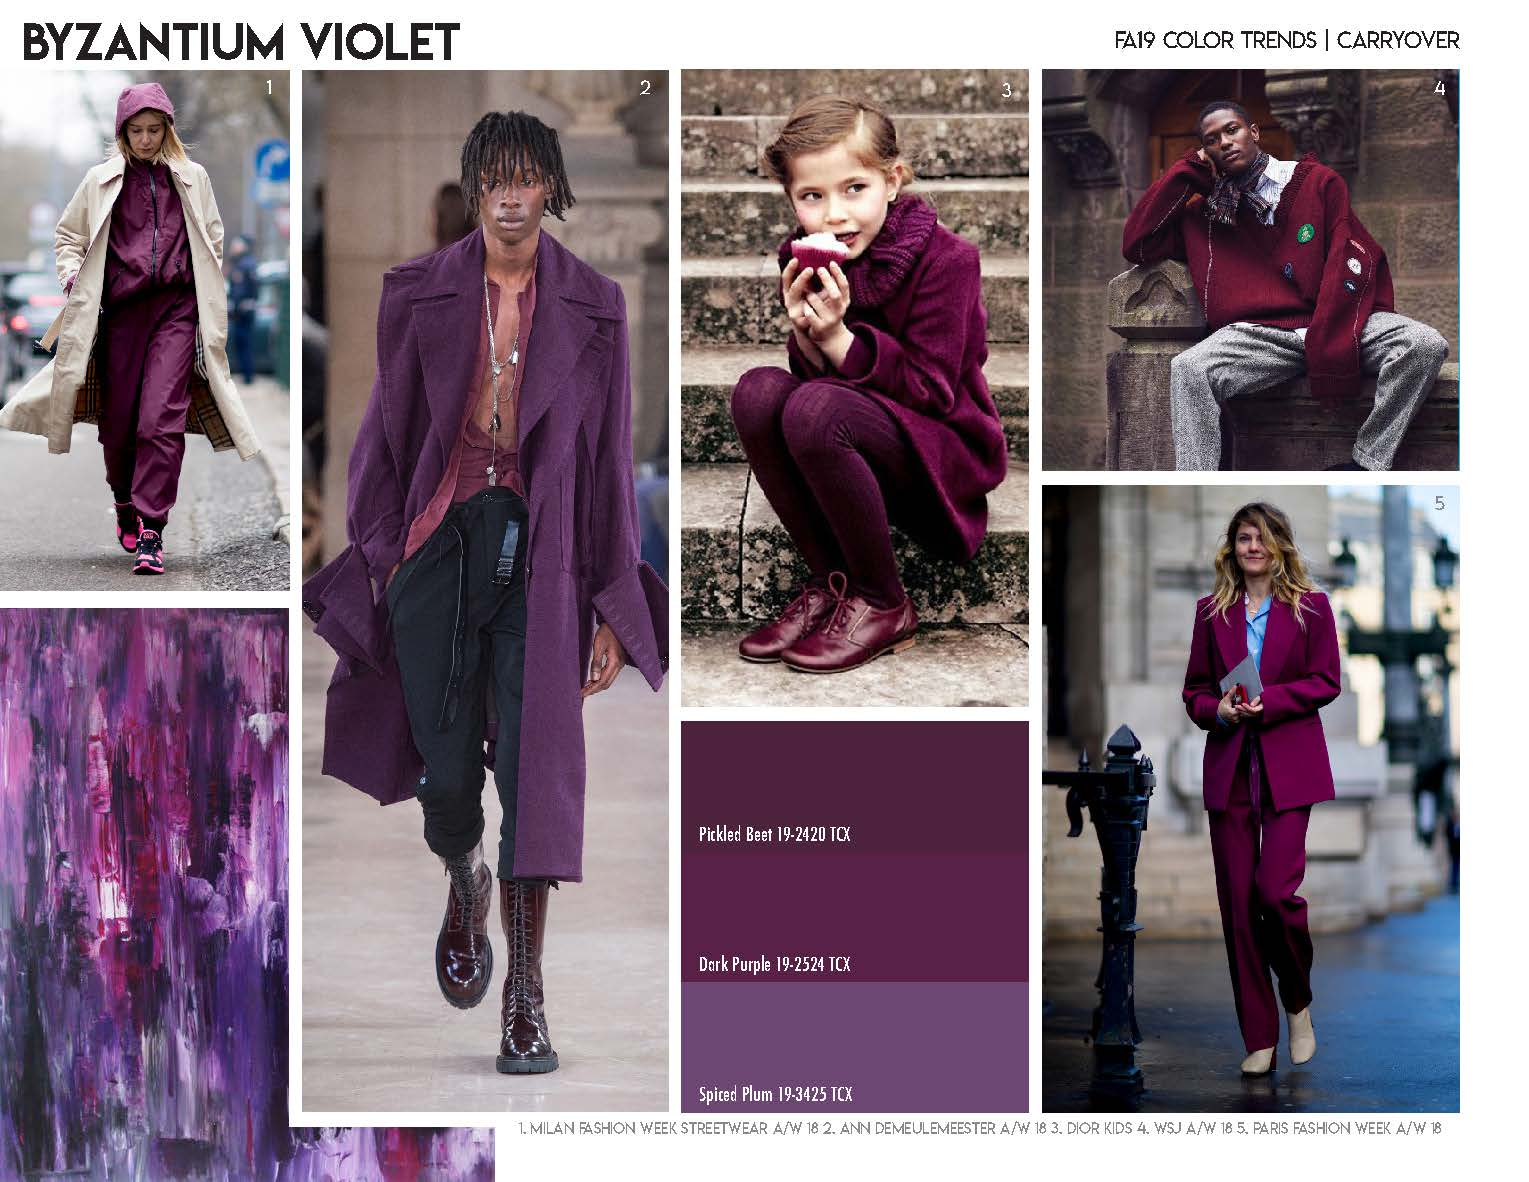 FA19 Color Trends_Page_04.jpg